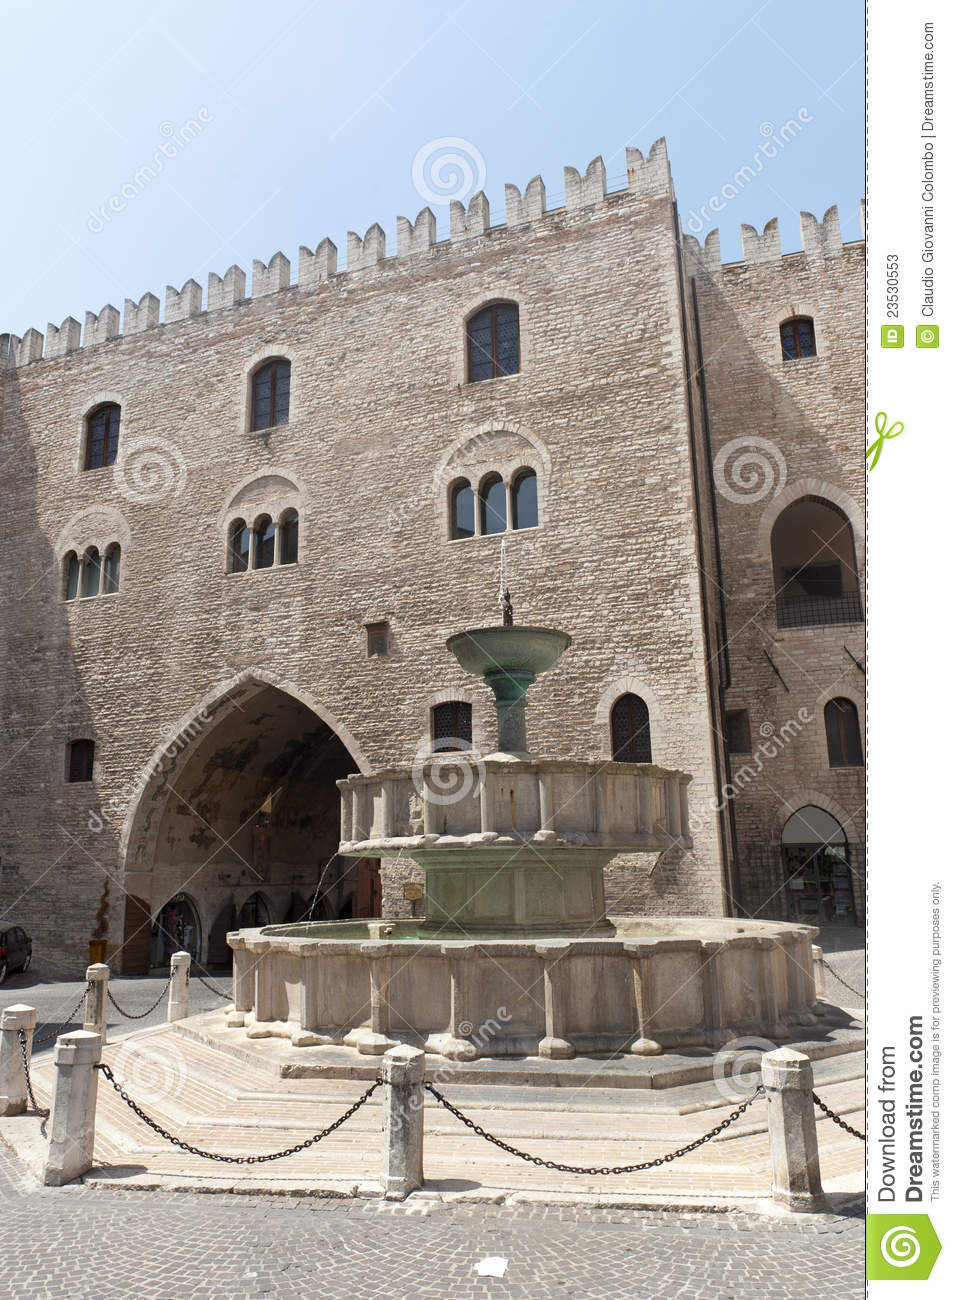 Fabriano Italy  City pictures : Fabriano Ancona, Marches, Italy , the main square with monumental ...